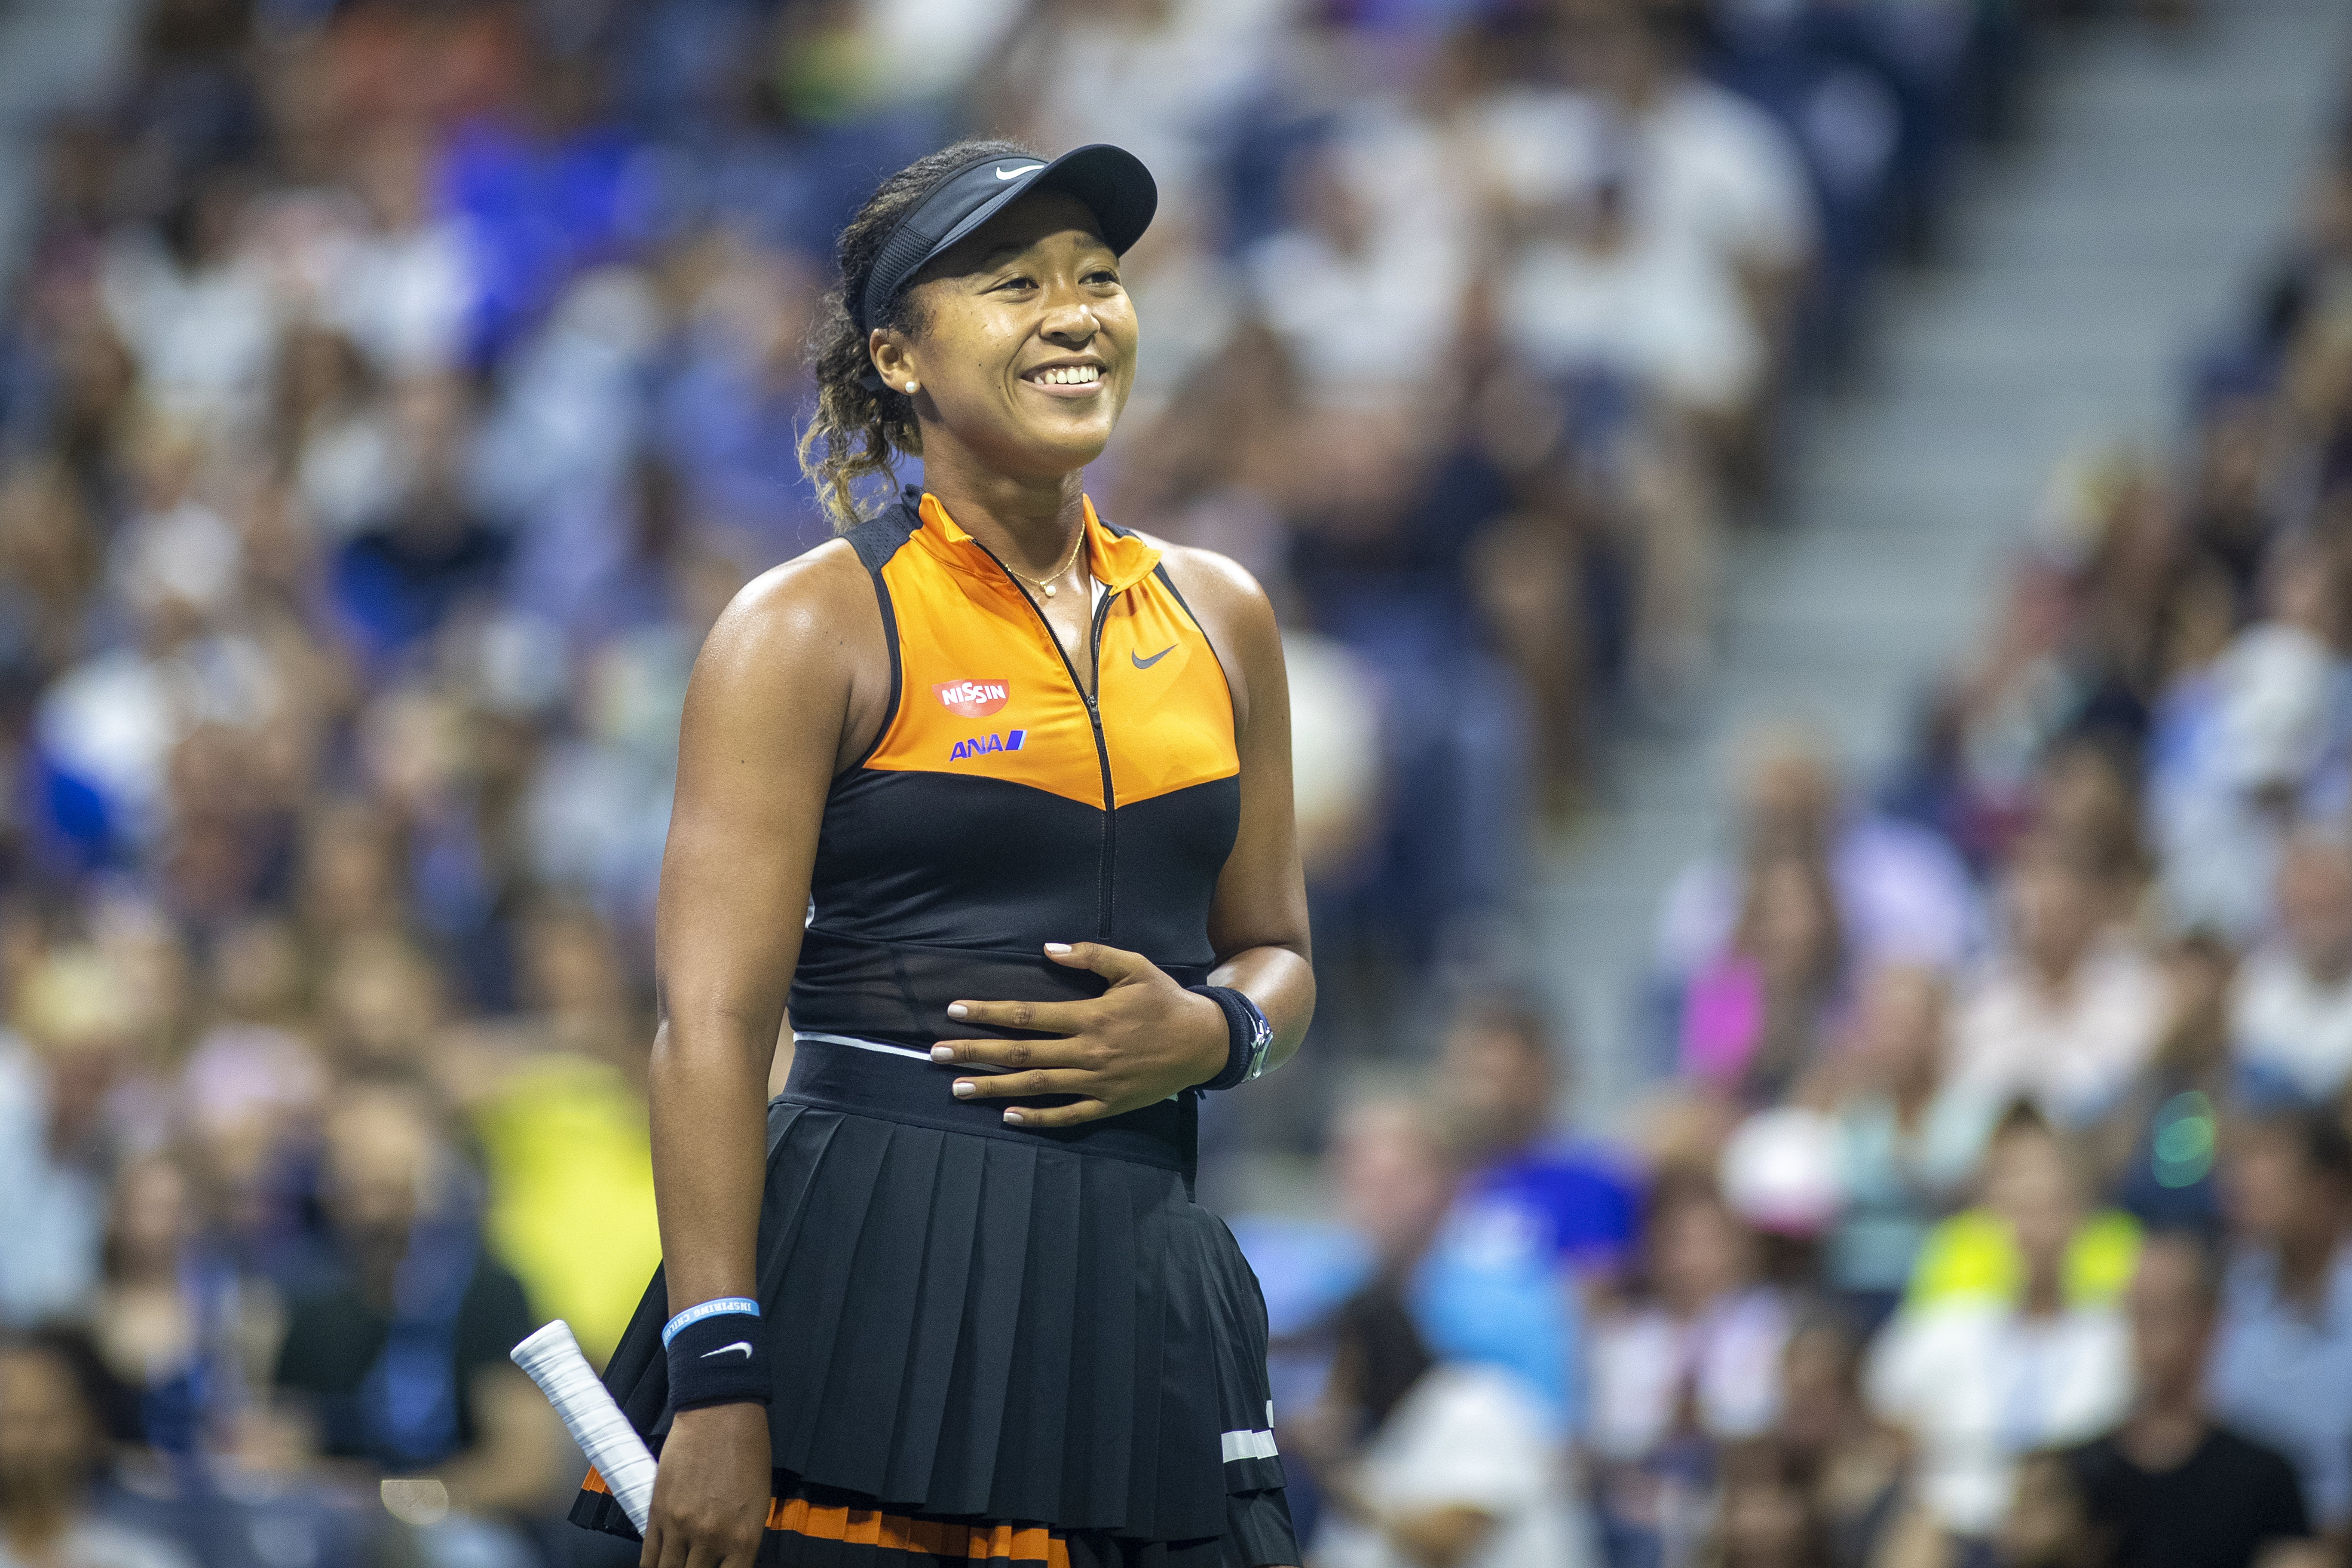 Naomi Osaka has made the decision to give up her U.S. citizenship so that she can represent Japn in the 2020 Olymics in Tokyo.